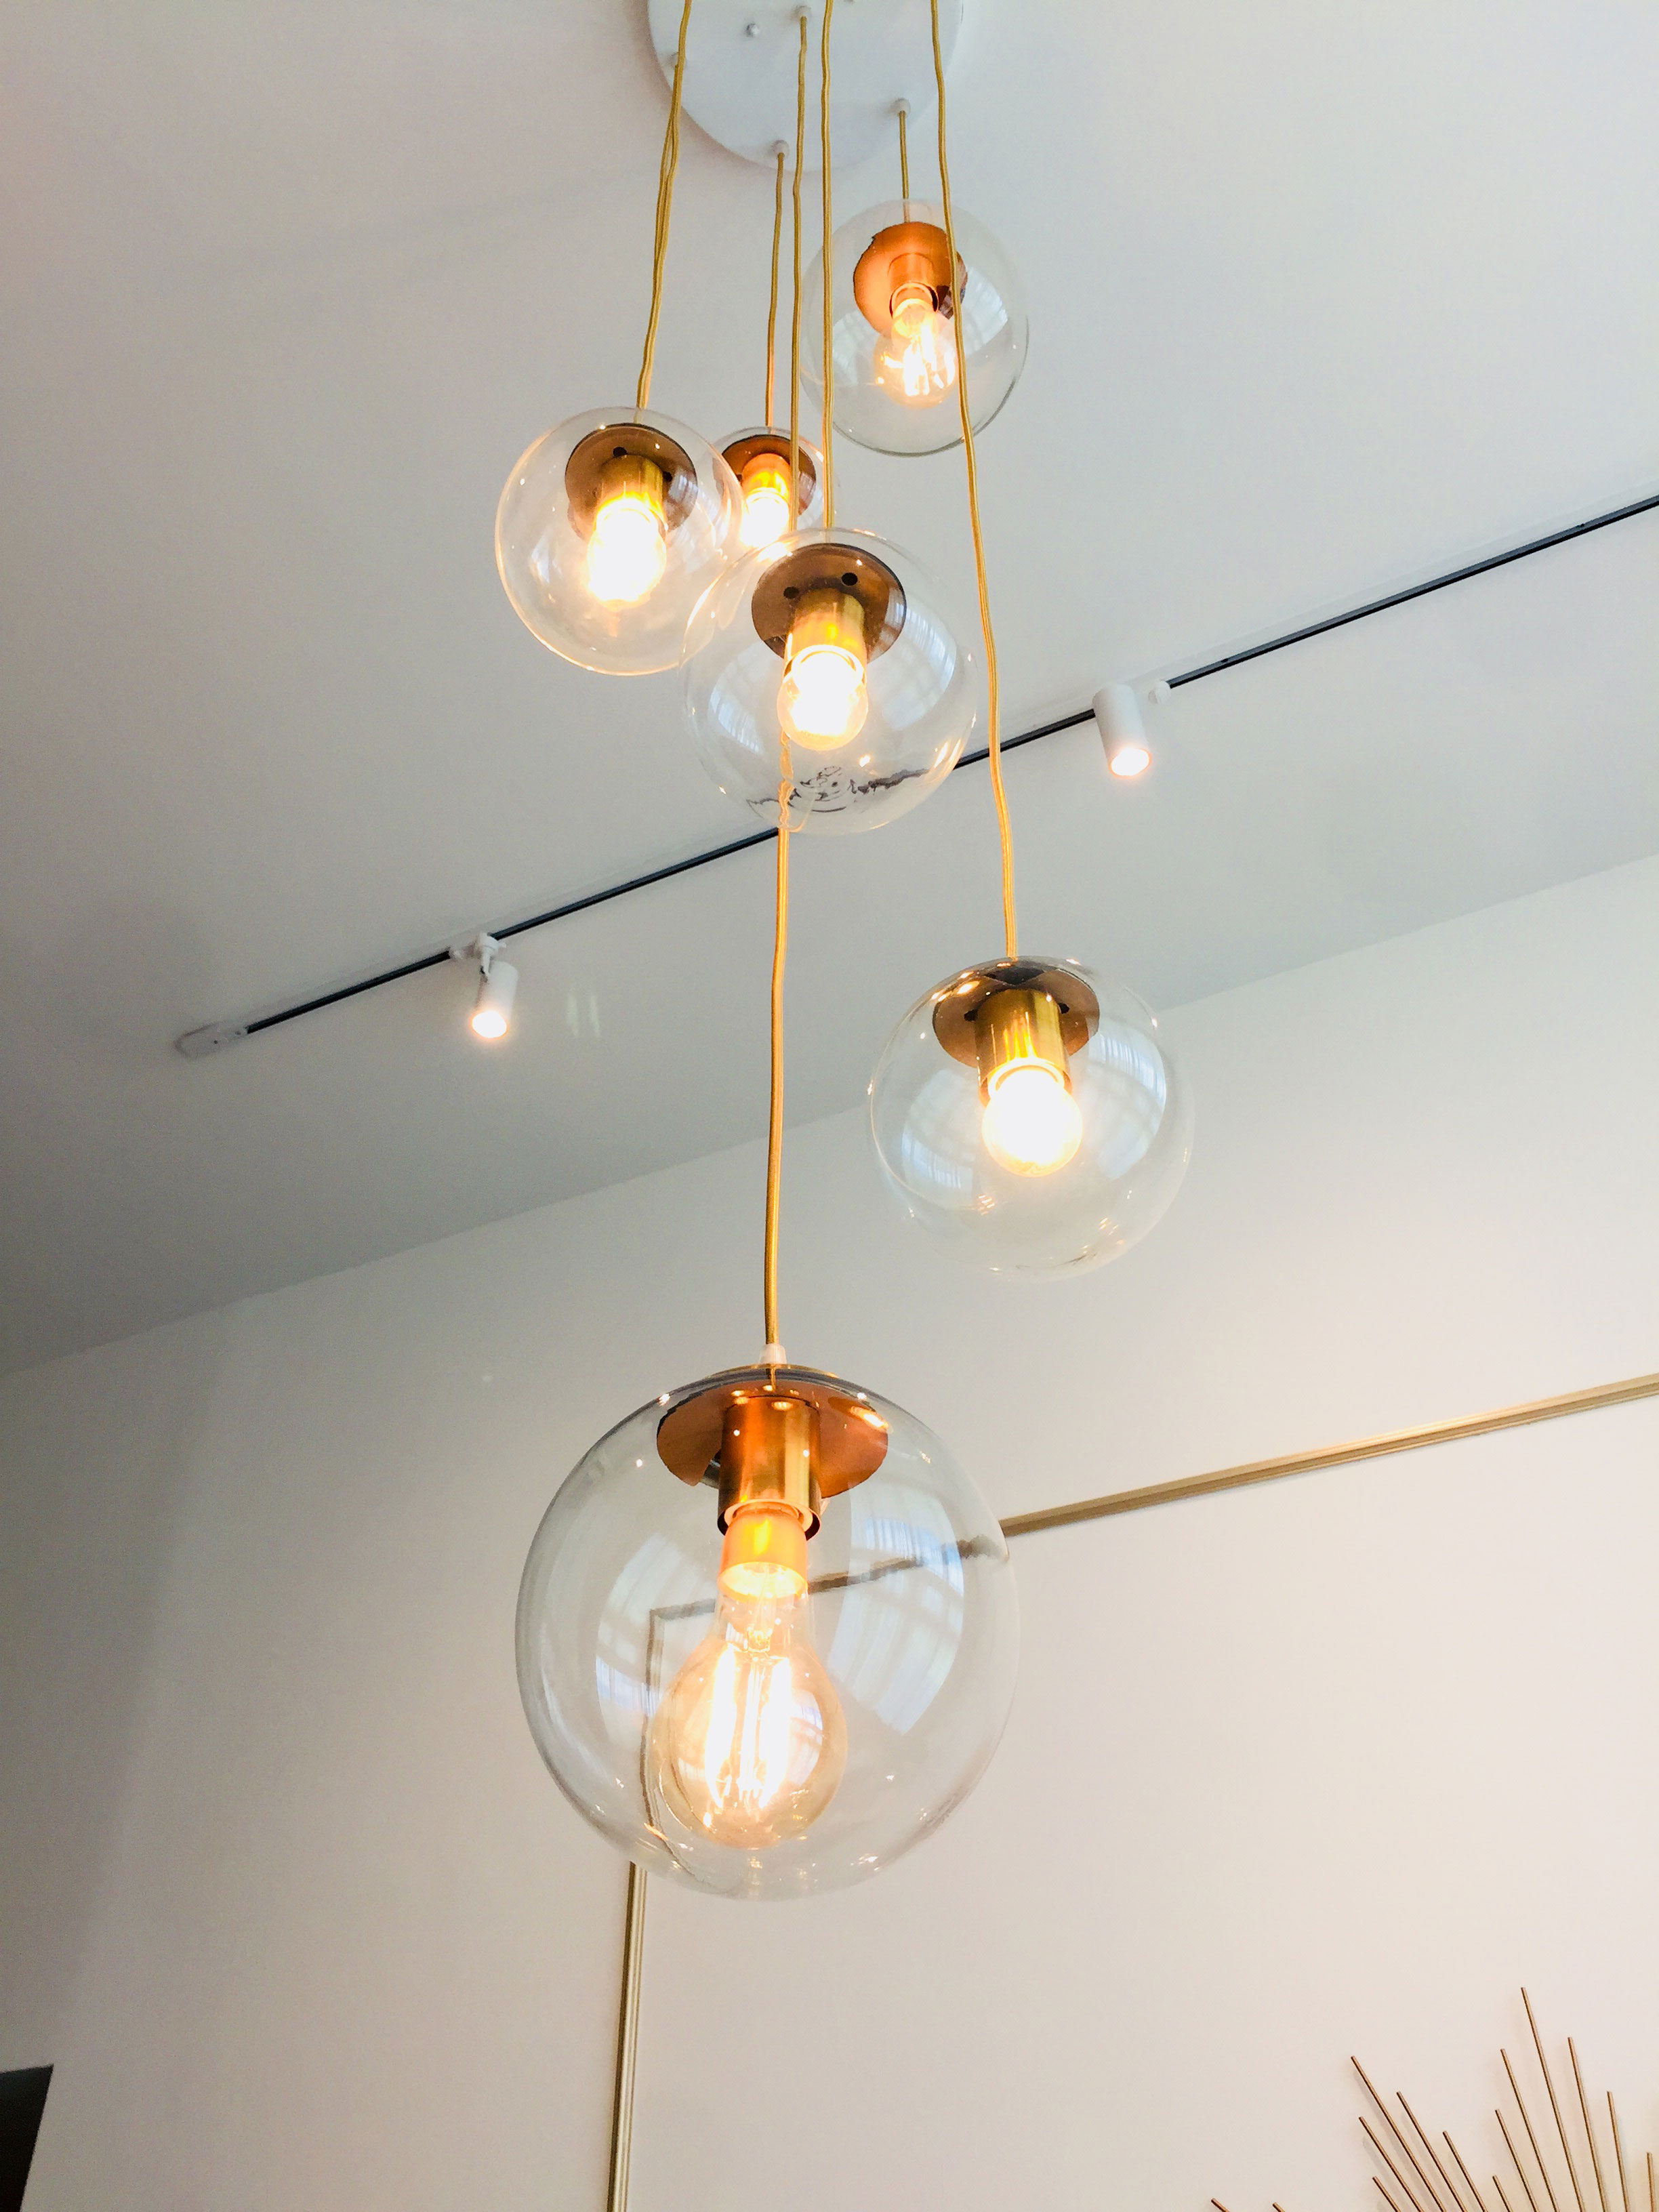 Luxury of height is accentuated with multiple pendant lighting that draws the eye up to appreciate the vast vertical space.